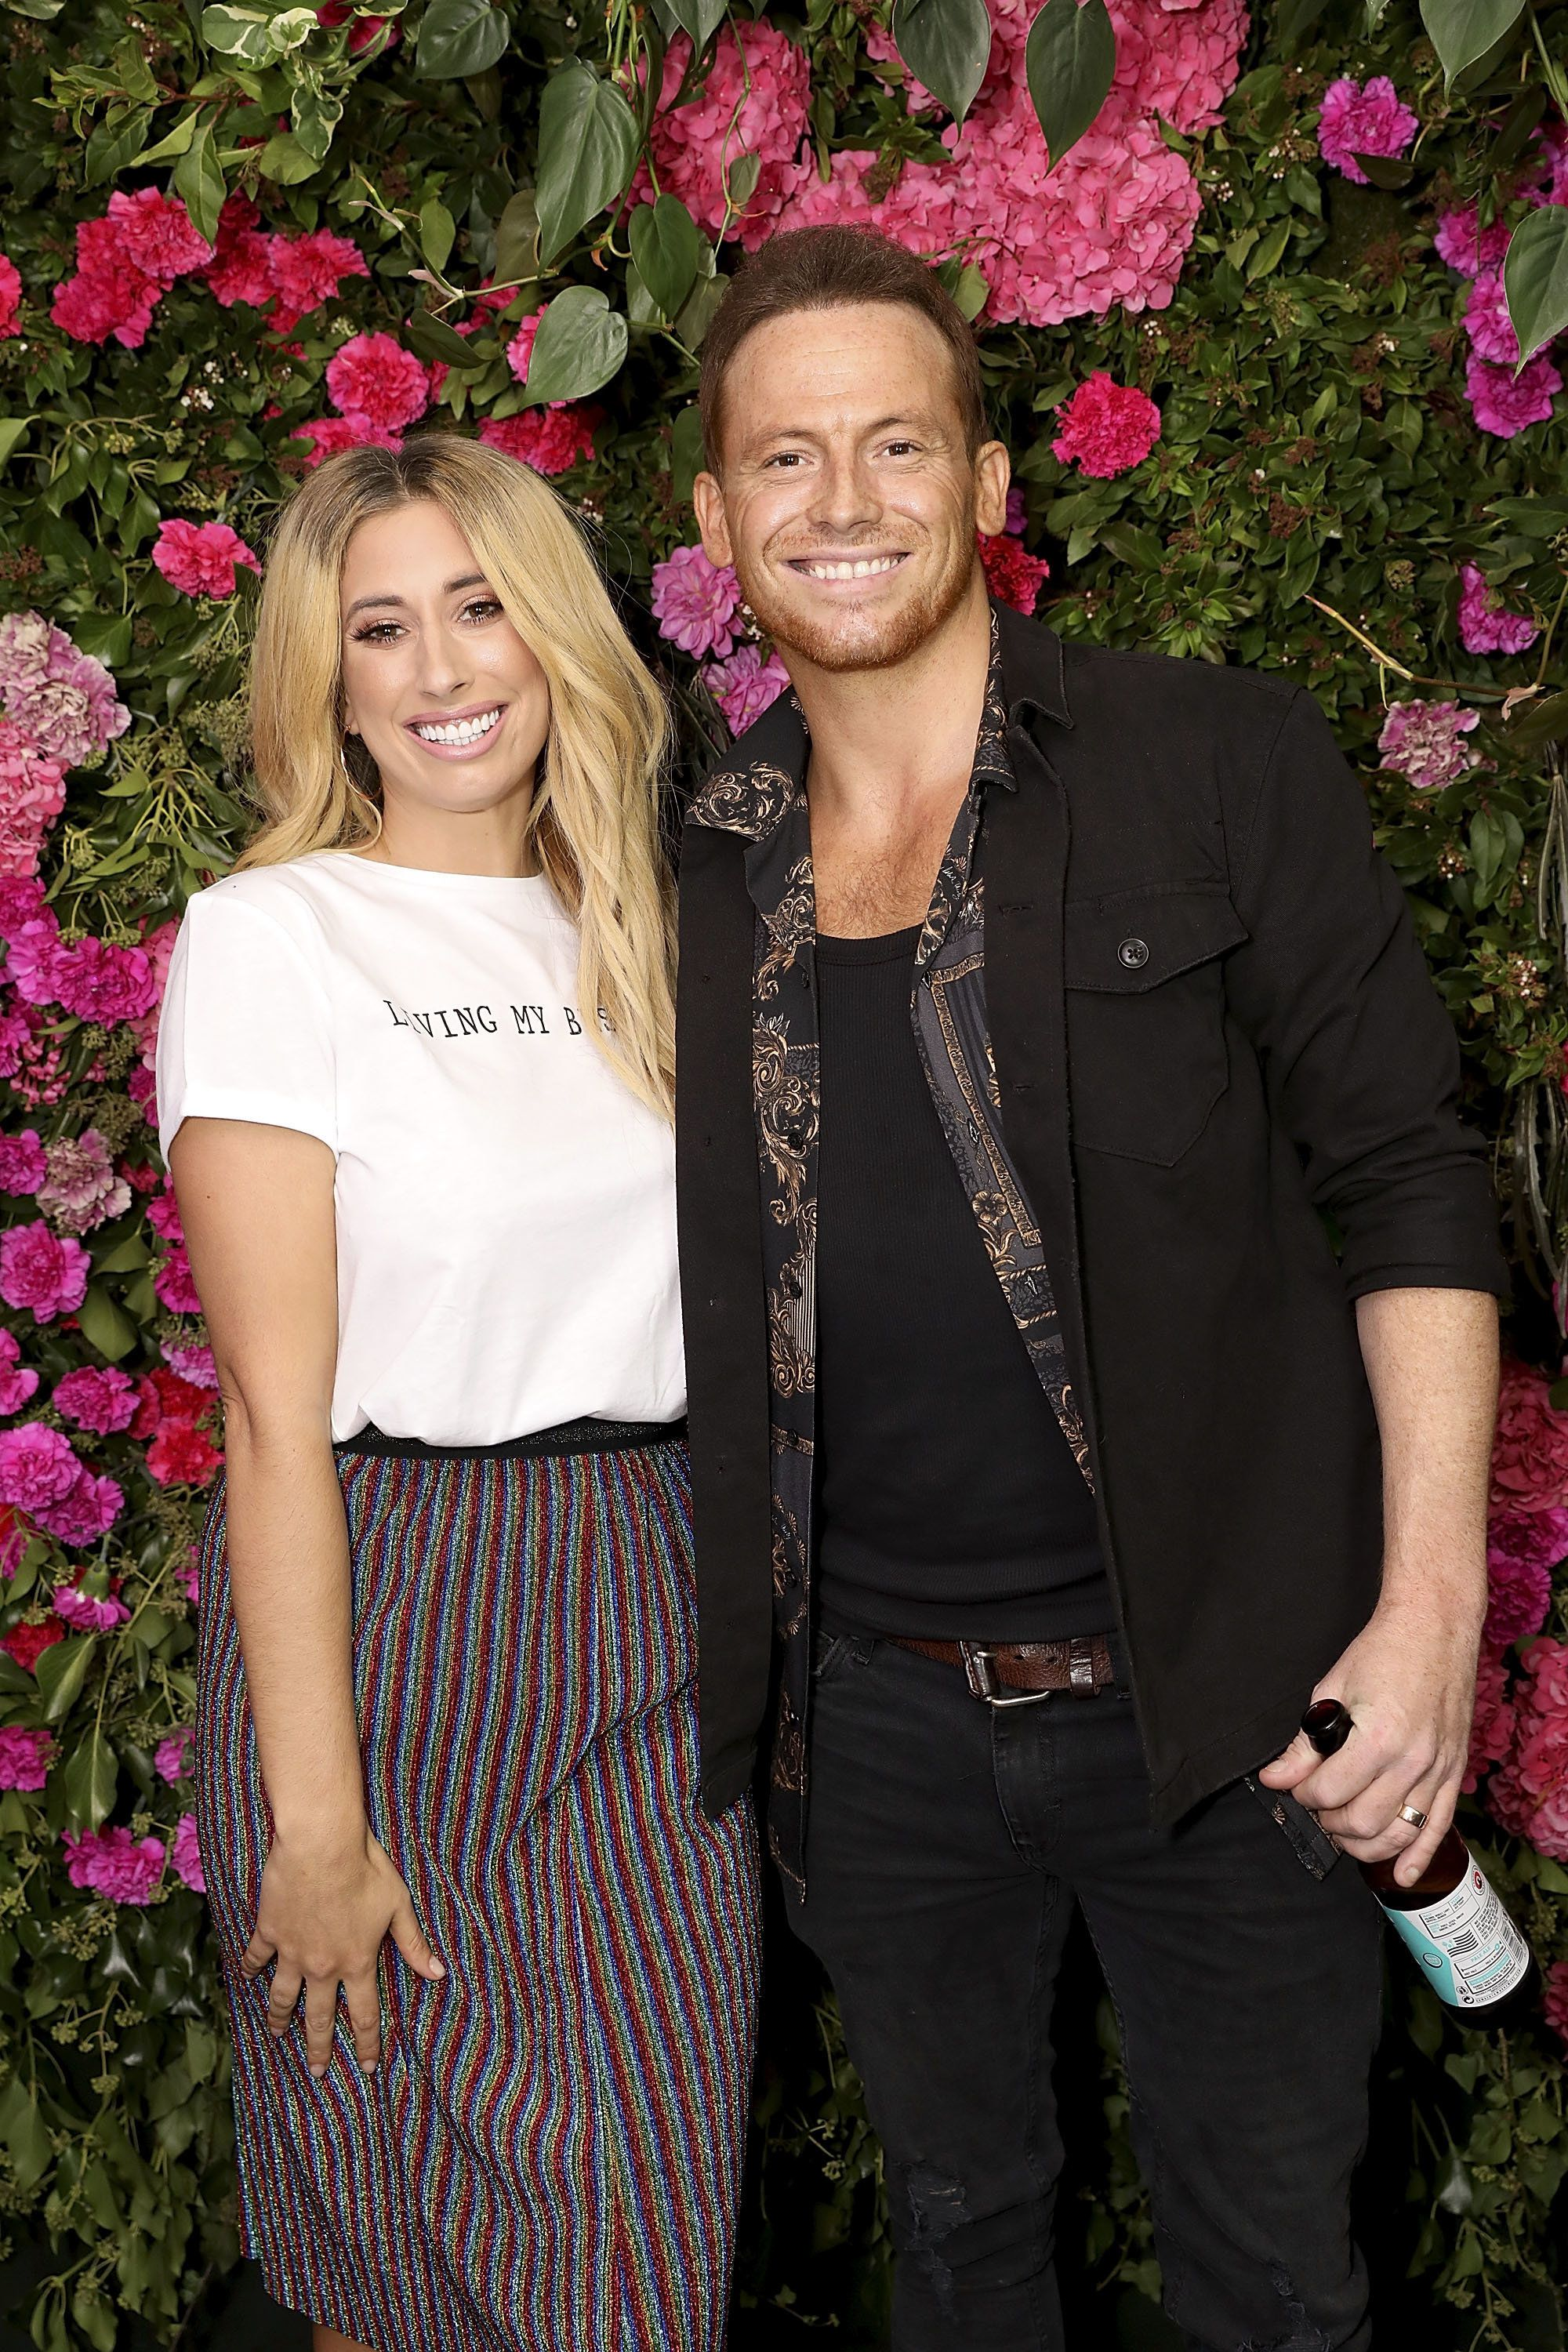 Stacey Solomon Is Pregnant And Joe Swash Announced It In The Nicest